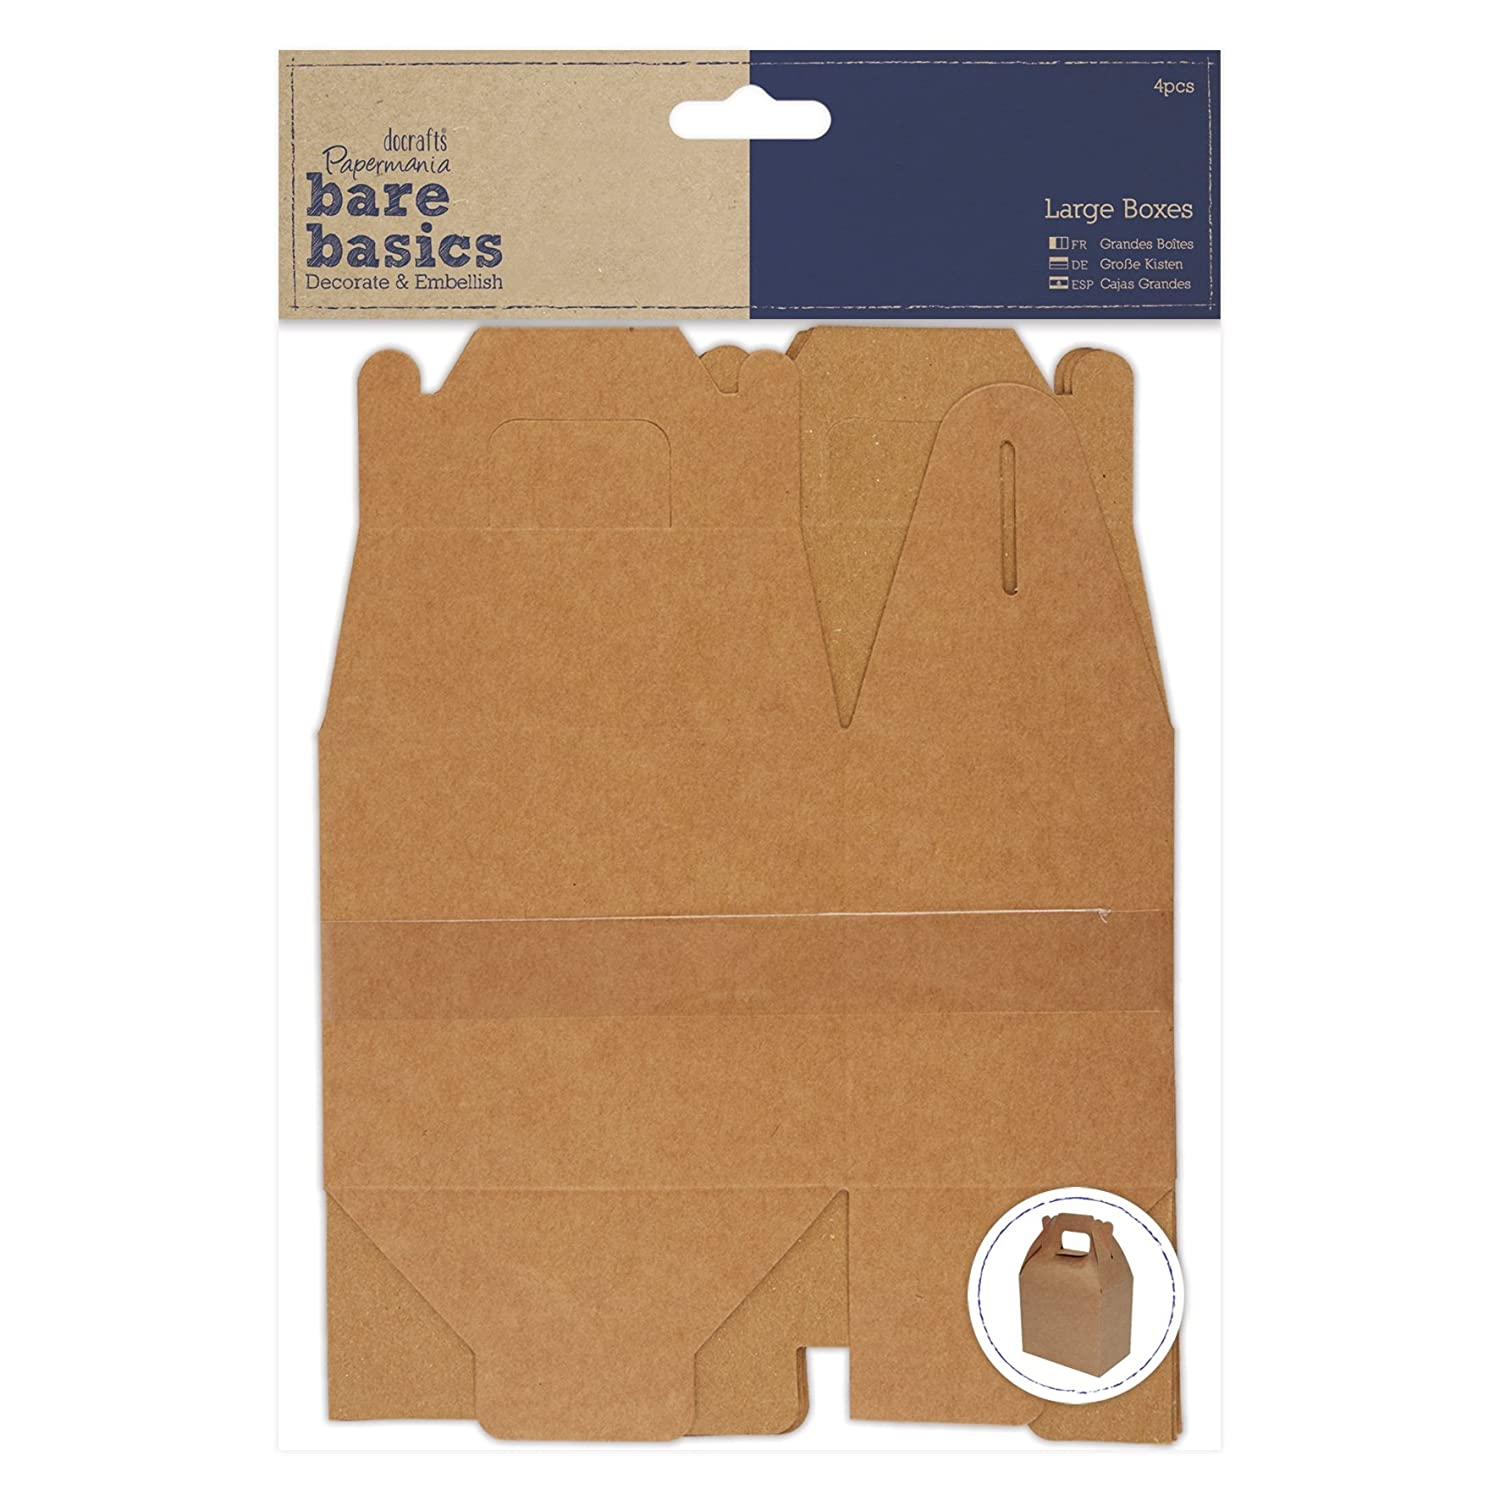 Amazon.com: DOCrafts PMA174021 Papermania Bare Basics Boxes (4 Pack), Large, Brown: Arts, Crafts & Sewing